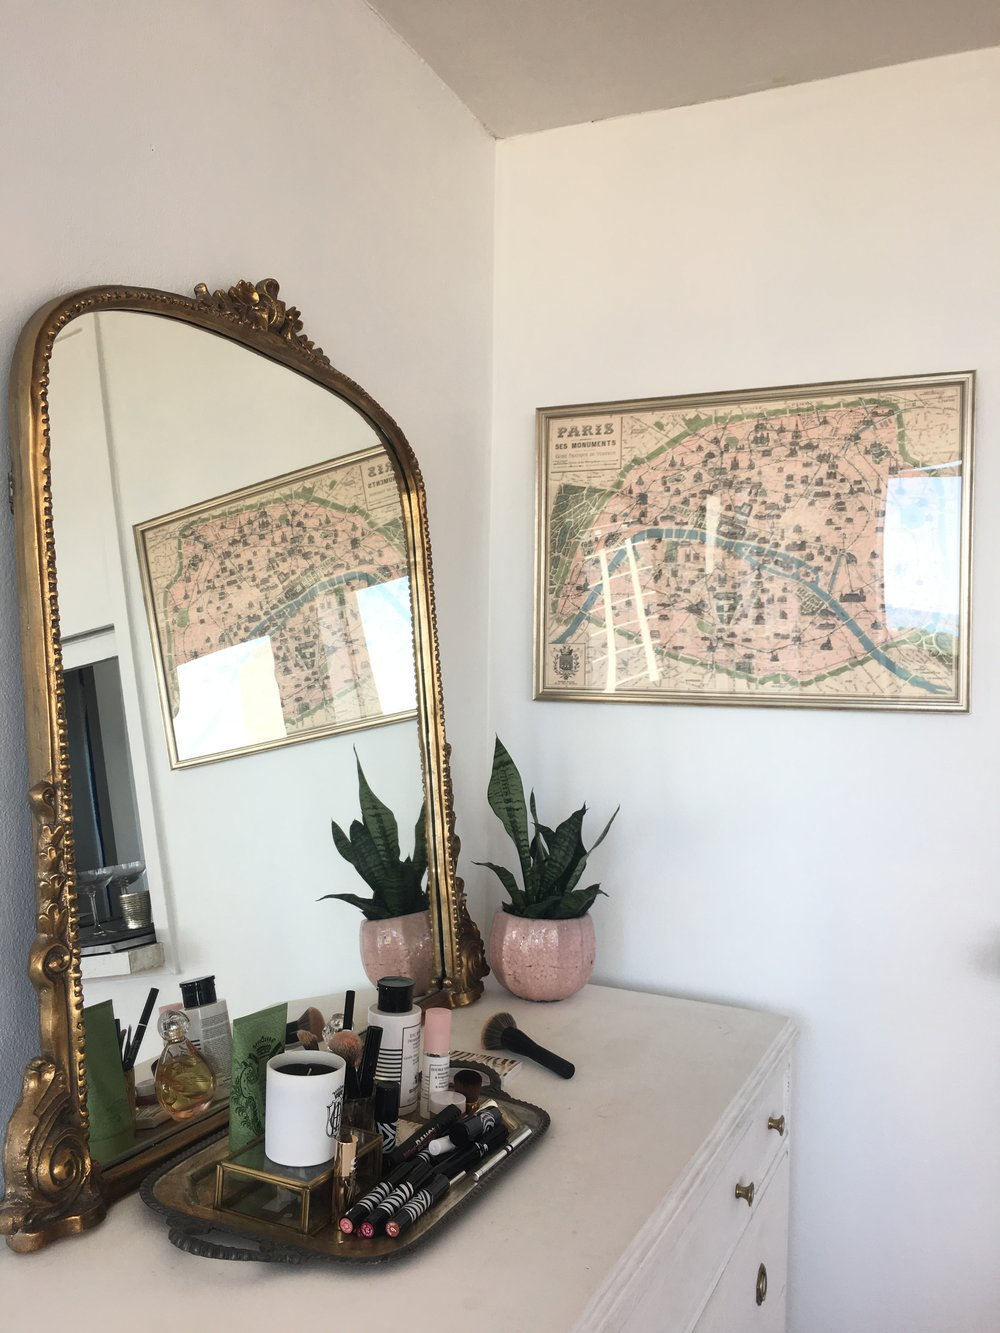 my favorite corner in my apartment thanks to this Parisian inspired mirror and map